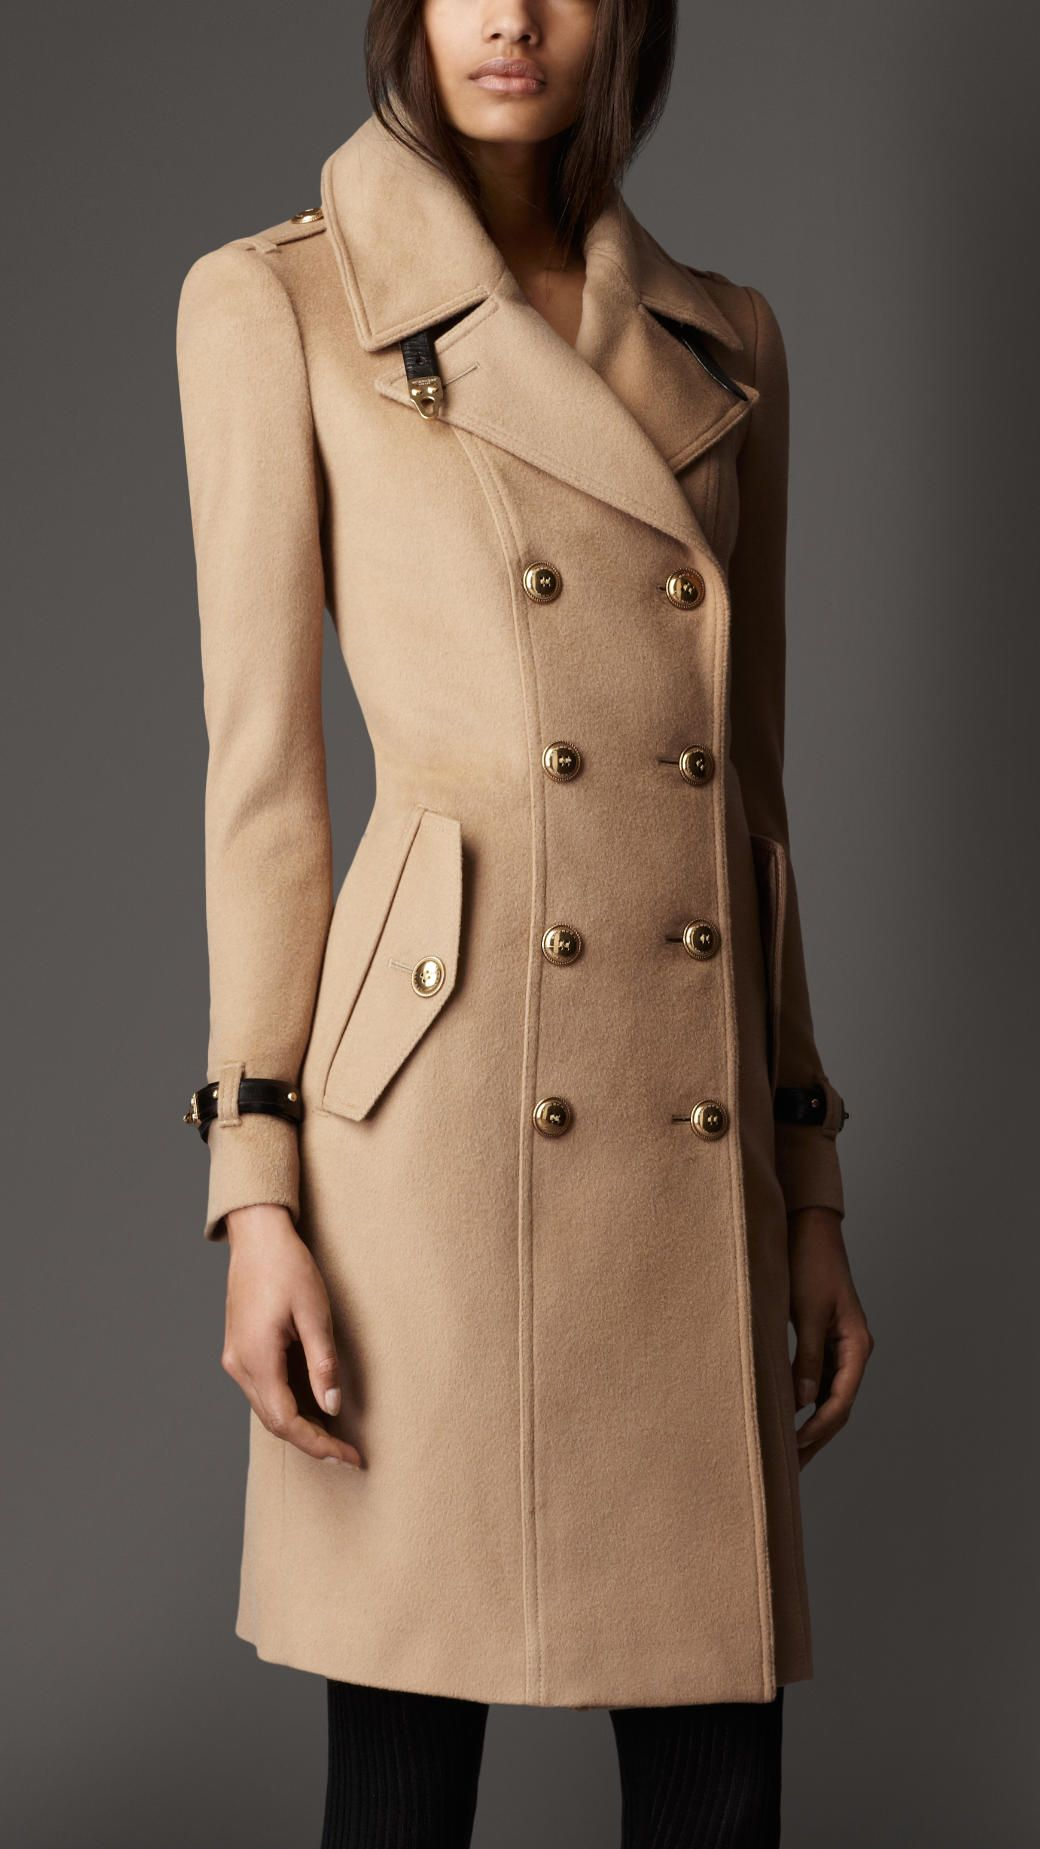 Women's Natural Leather Detail Wool Cashmere Coat | Cashmere